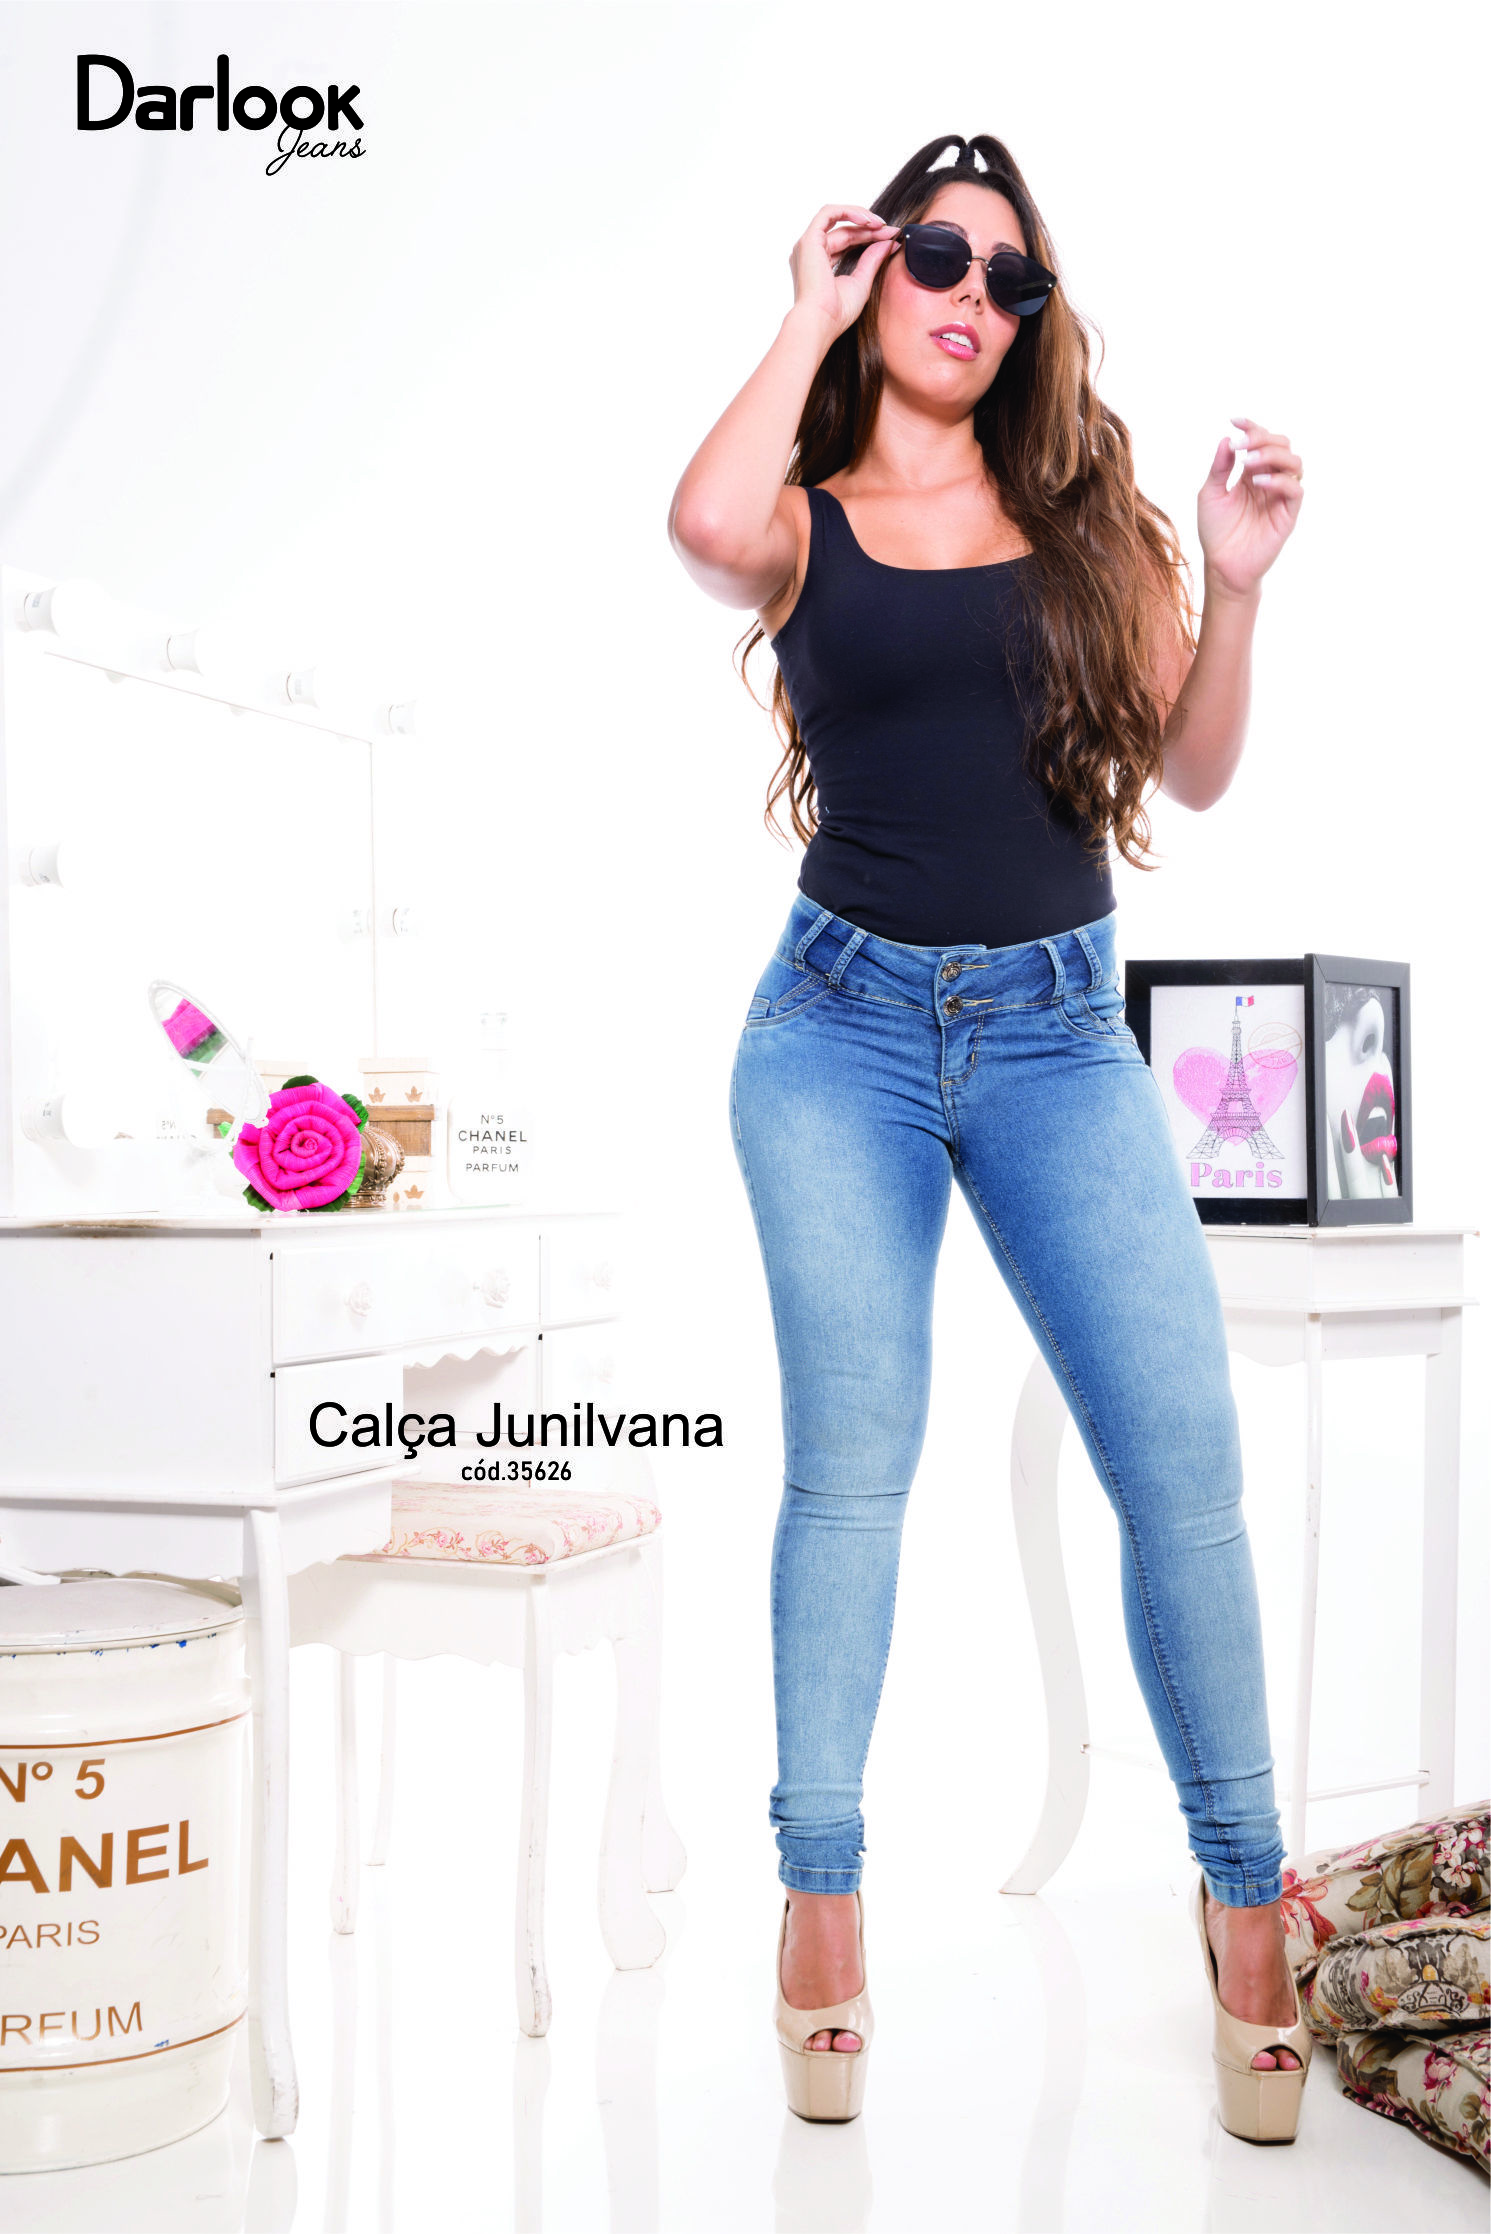 Calça Darlook Junilvana [35626]